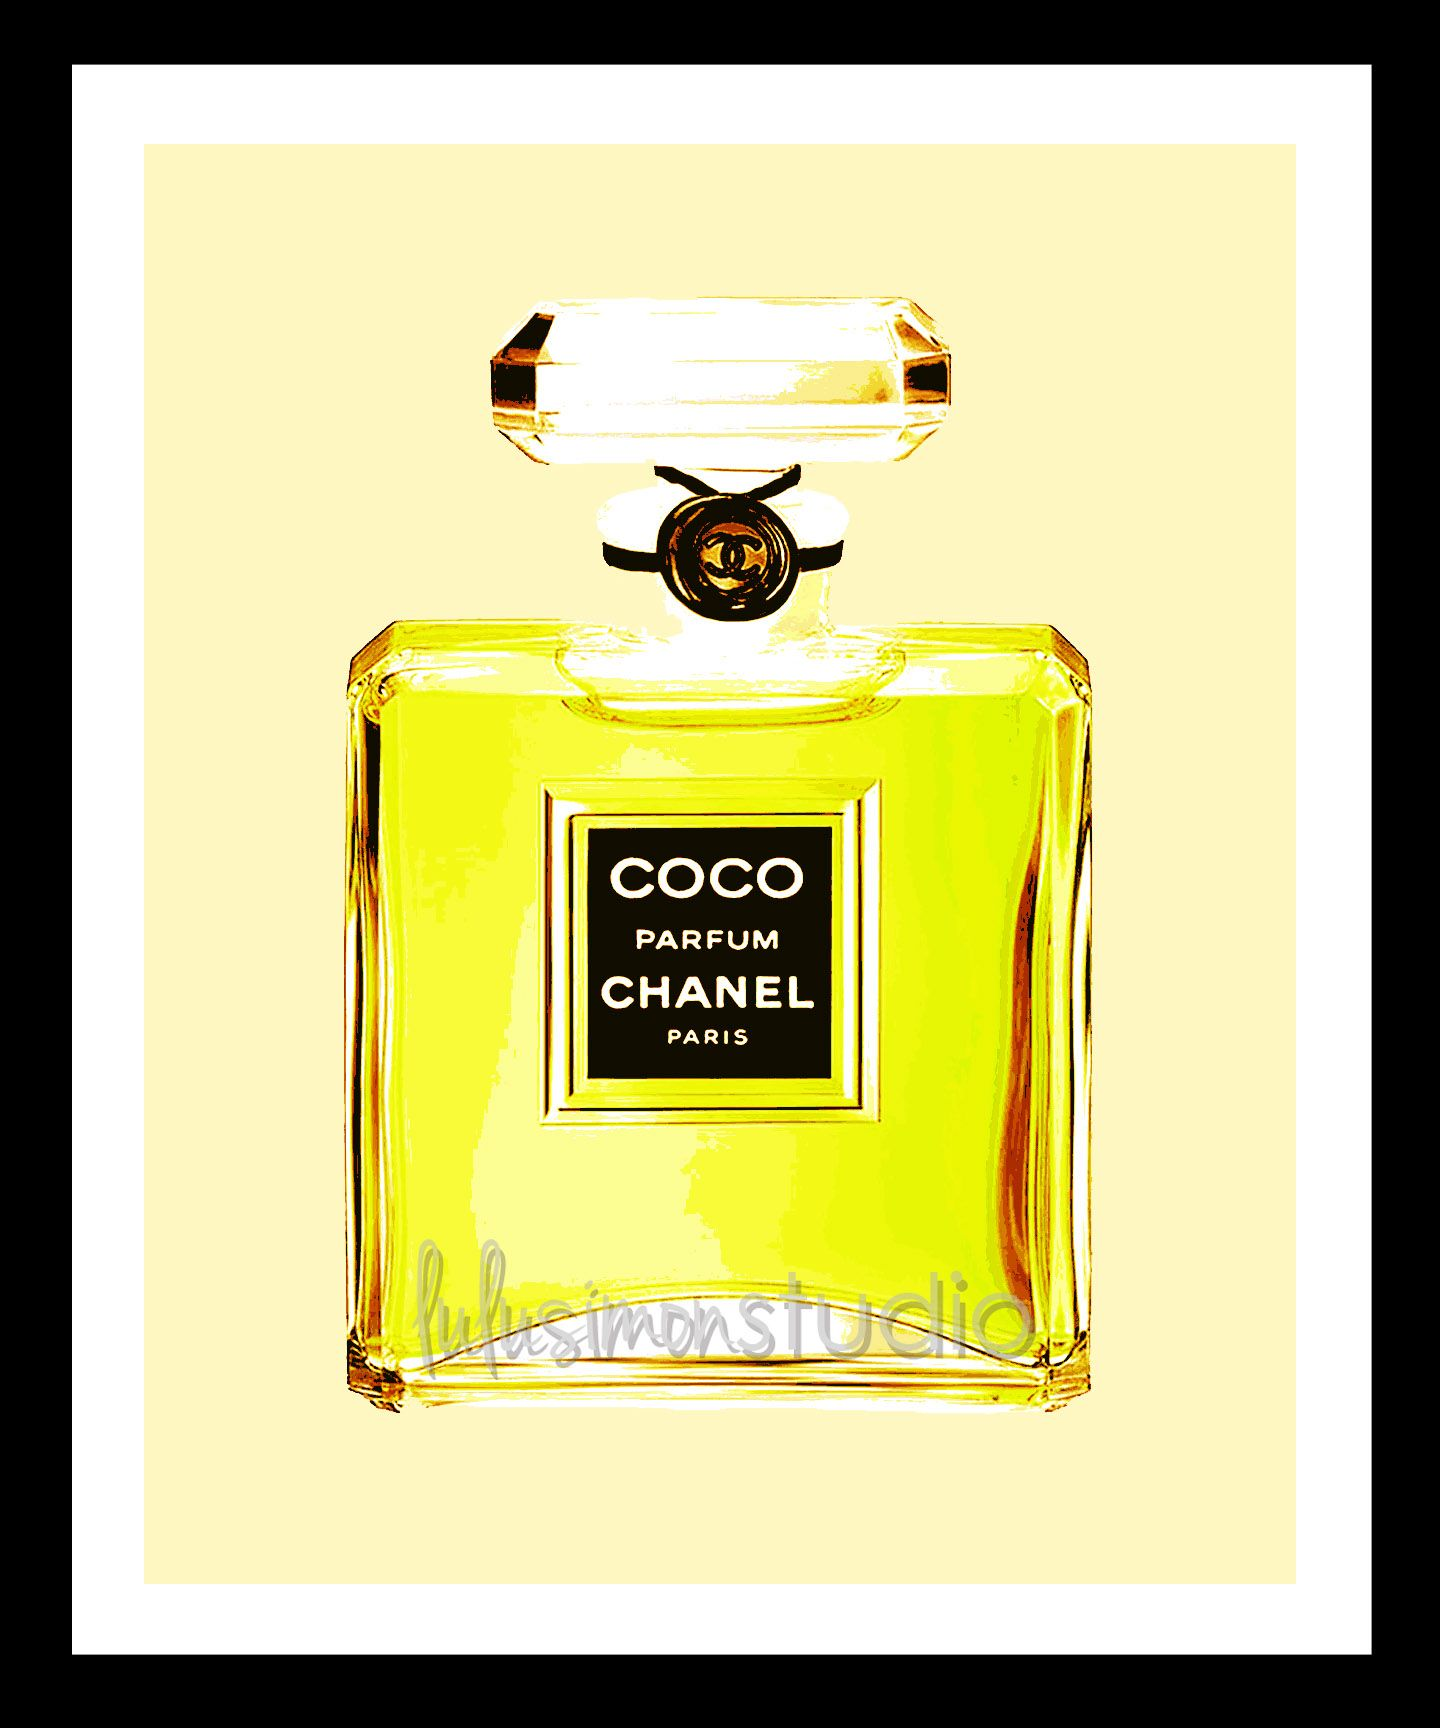 8x10 COCO Chanel Perfume Print by lulusimonstudio on Etsy, $15.00 ...